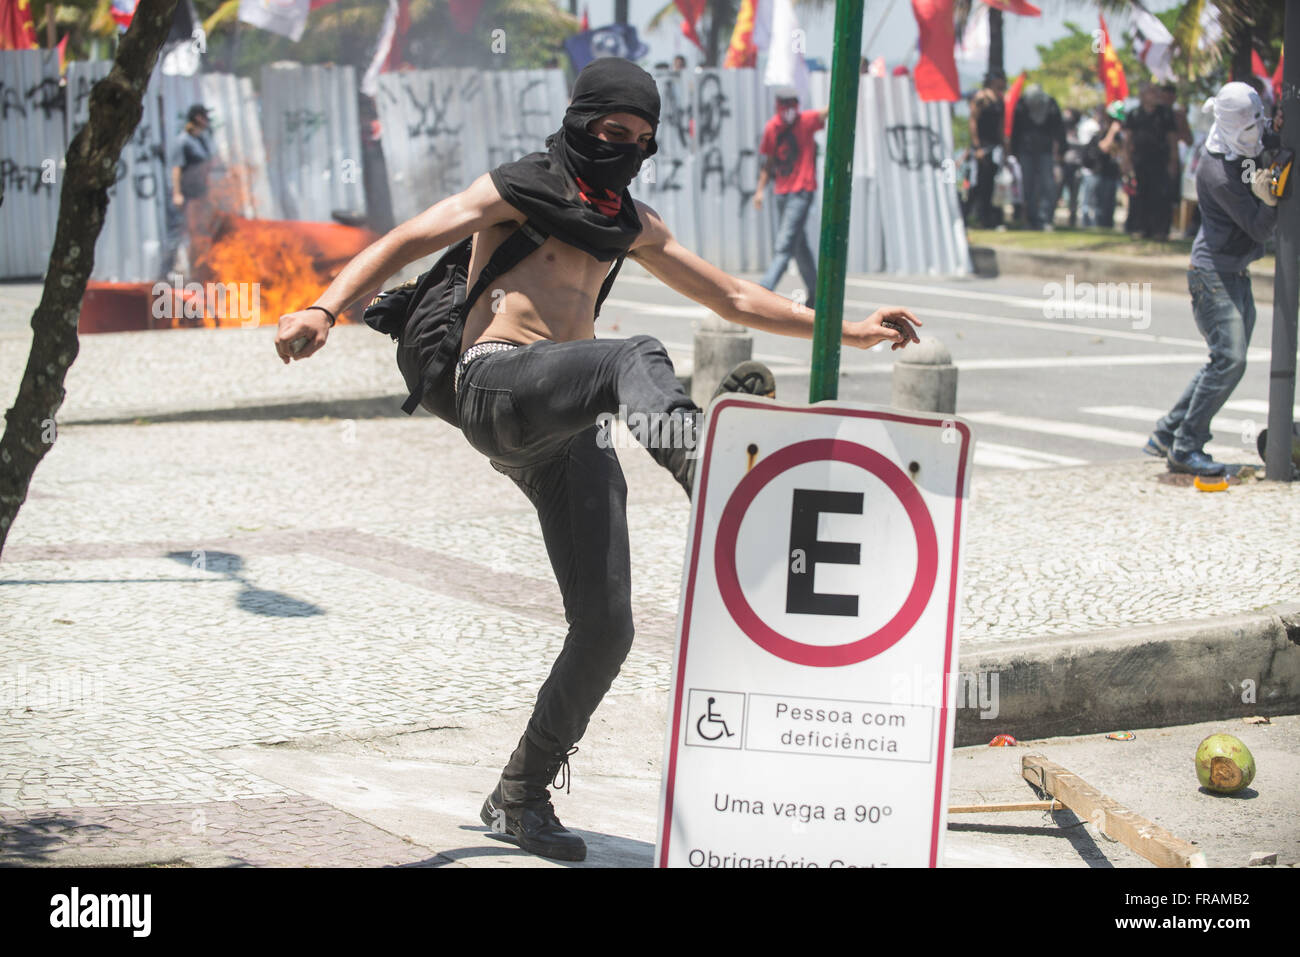 Protester breaks street sign during protest against the auction of the field Pound - Stock Image